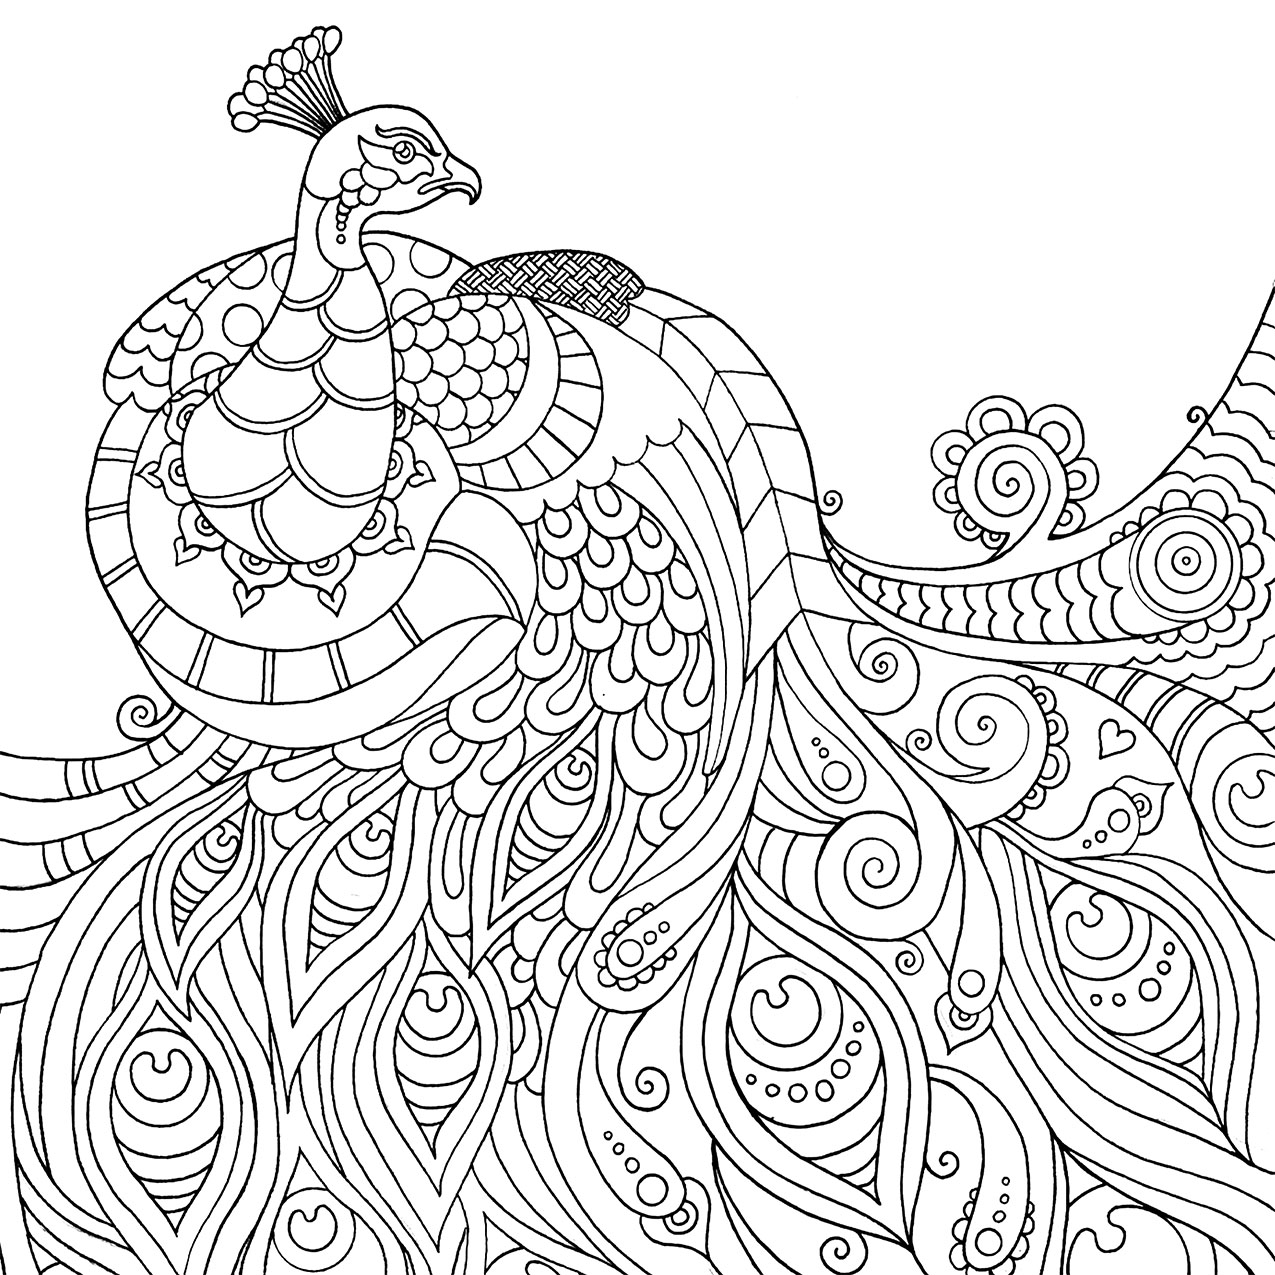 Terms Coloring Book Image To Find Thousands Of Additional Examples Make Sure Save The Example Your Computer Flash Drive And Or Online Storage